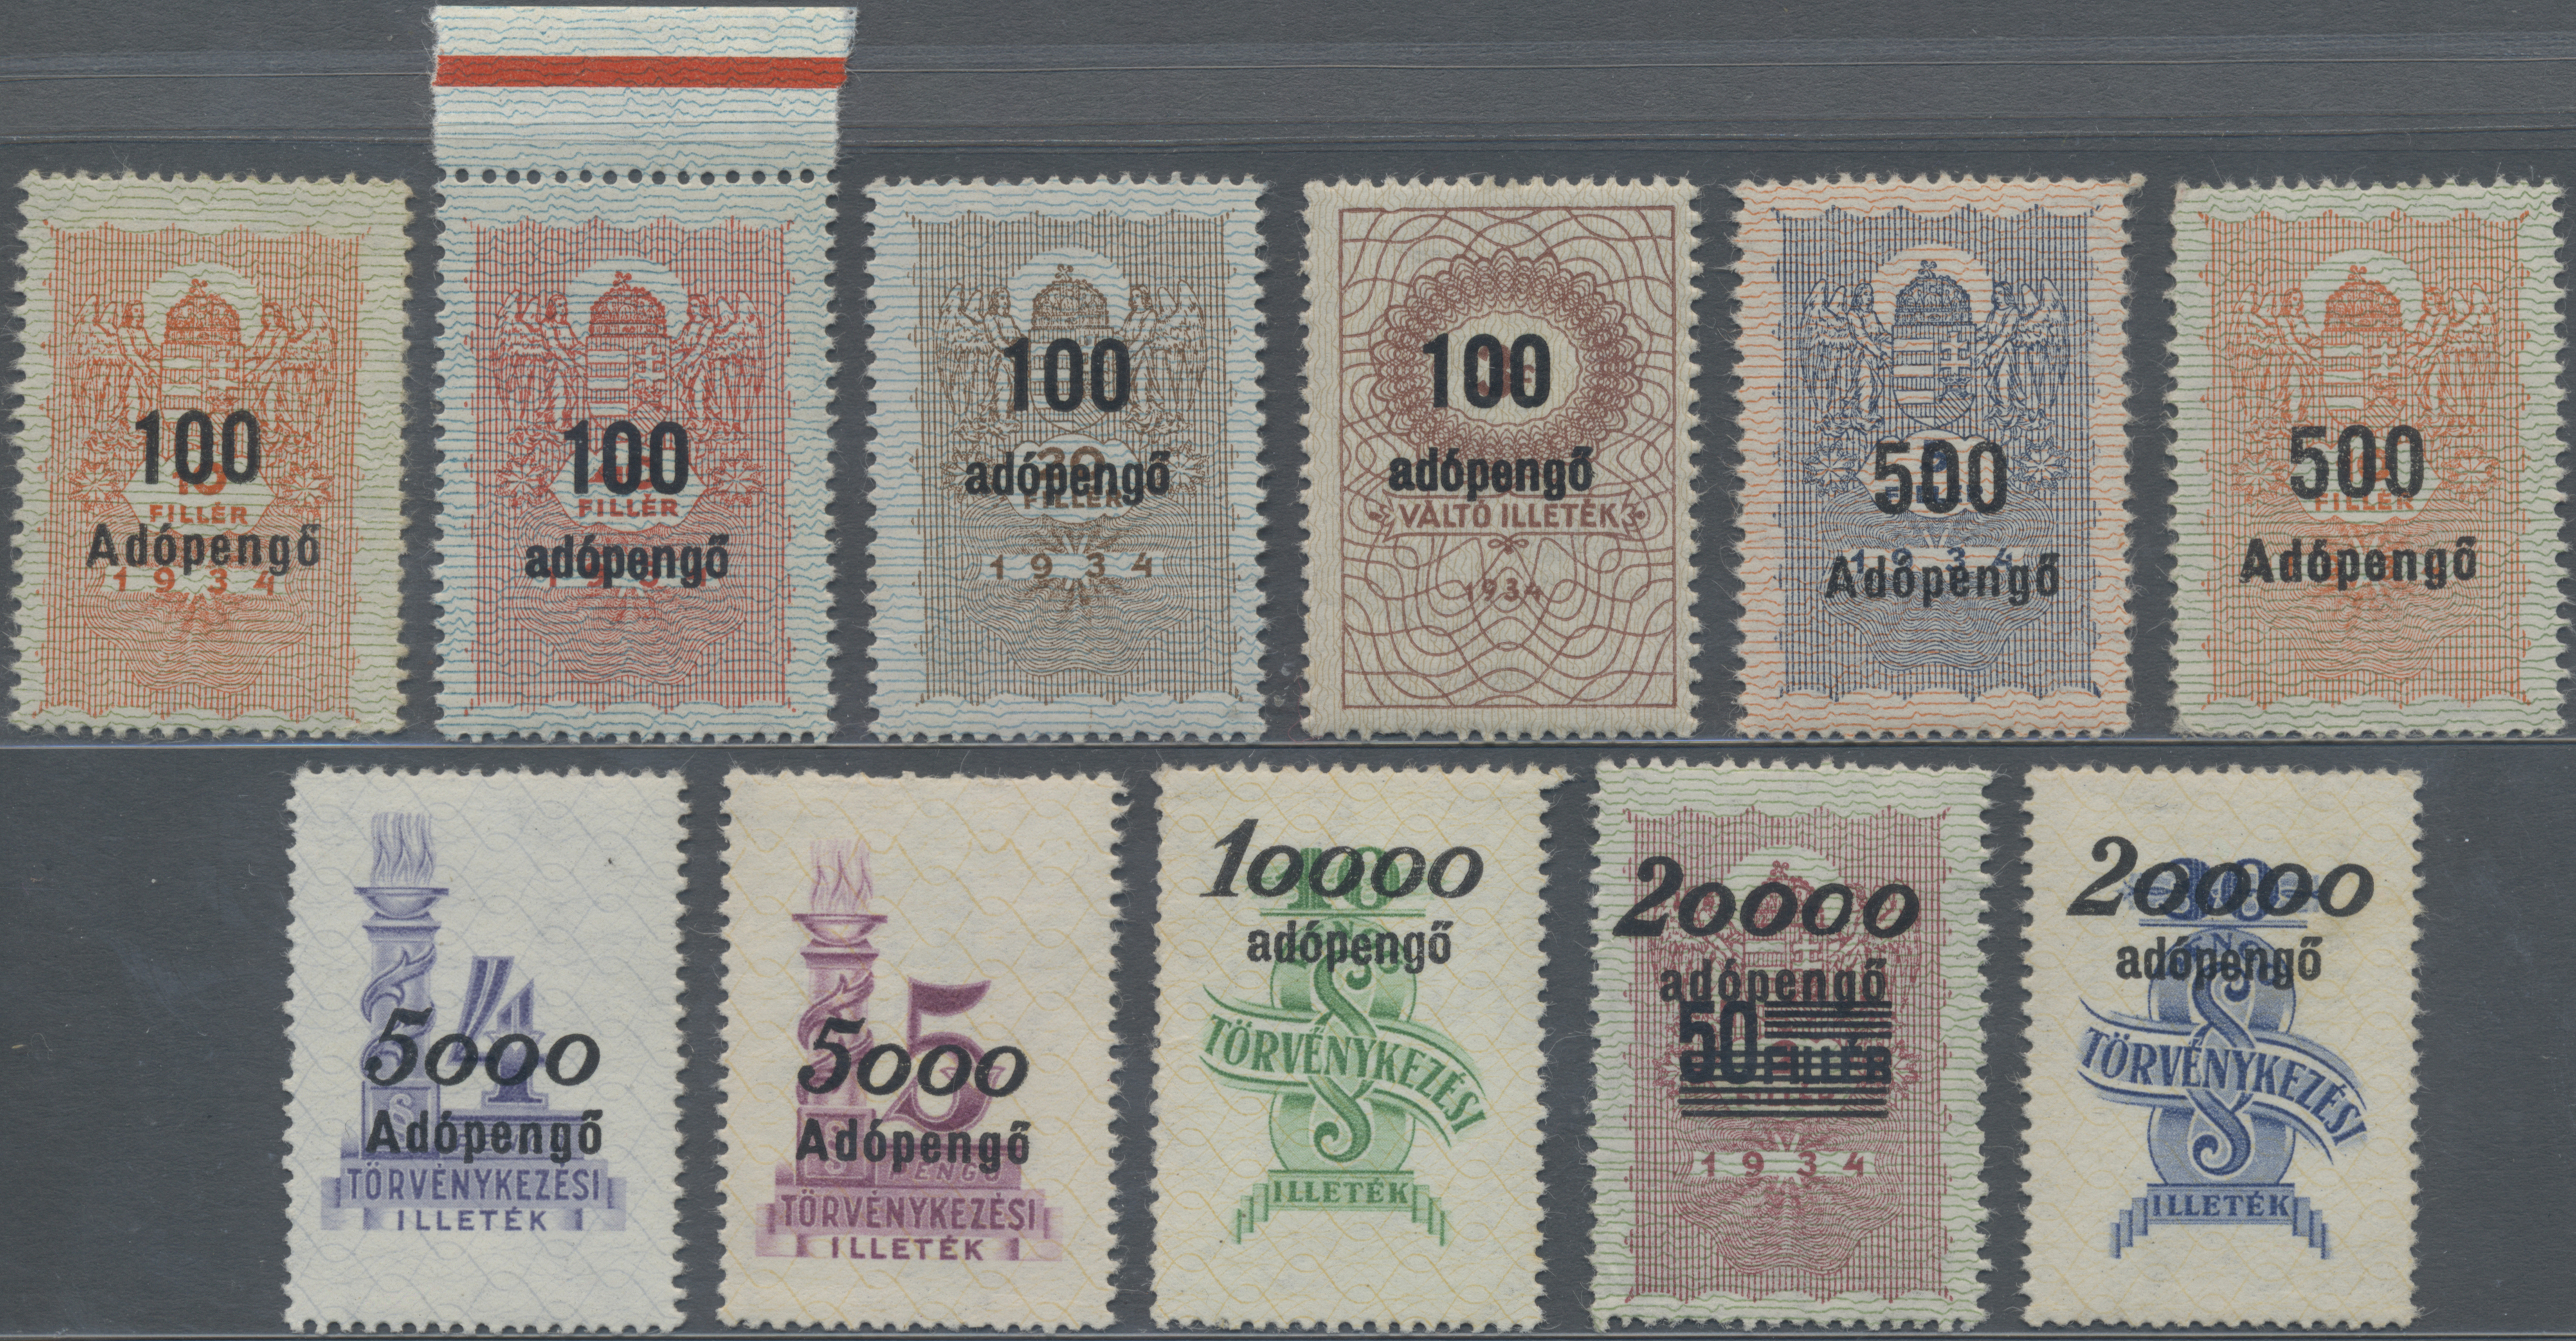 Lot 00393 - Hungary / Ungarn | Banknoten  -  Auktionshaus Christoph Gärtner GmbH & Co. KG Sale #48 The Banknotes